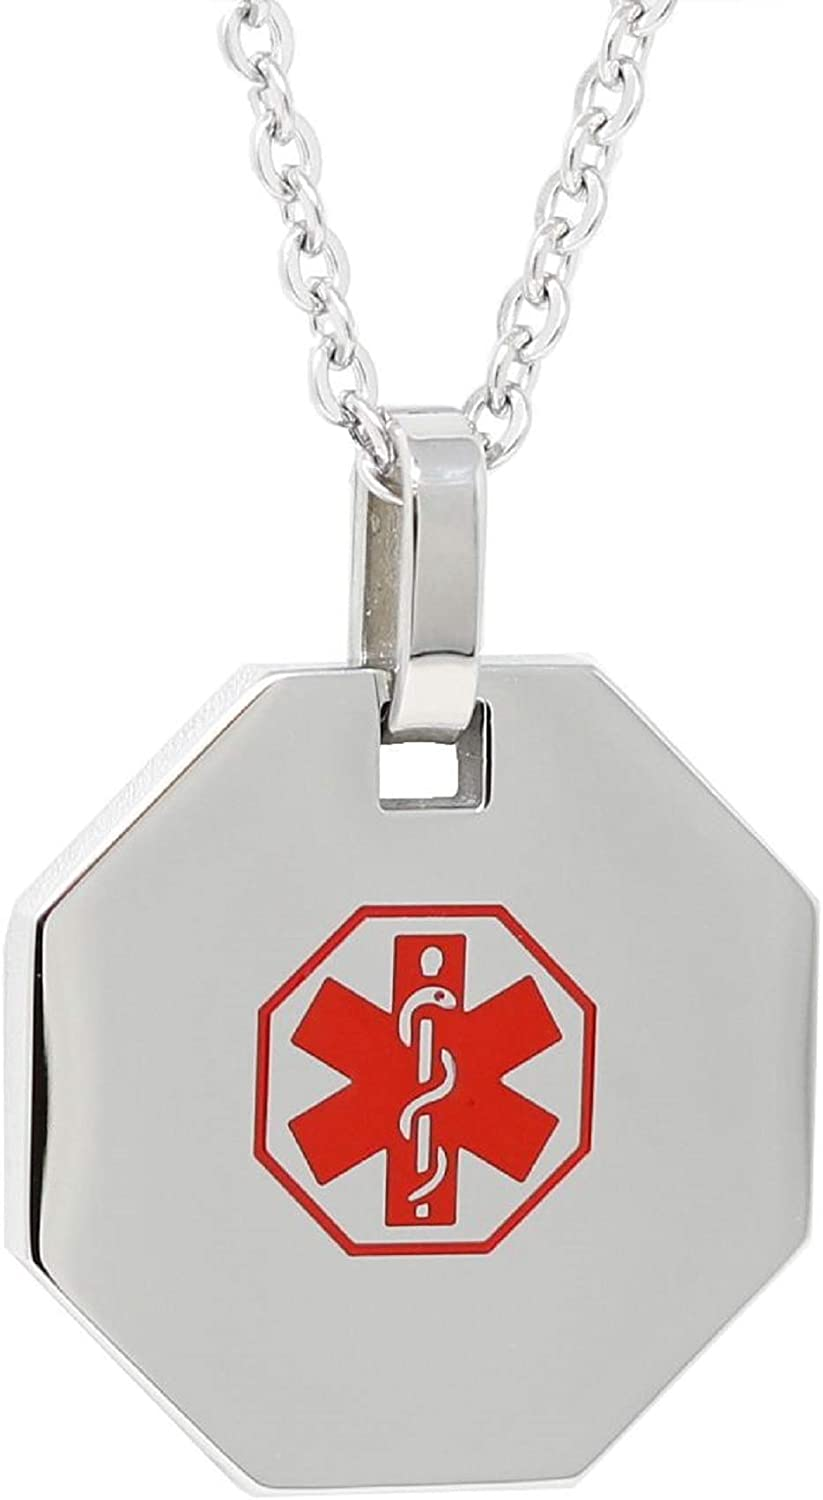 My Identity Doctor - Pre-Engraved & Customizable Diabetic Alert Medical ID Necklace